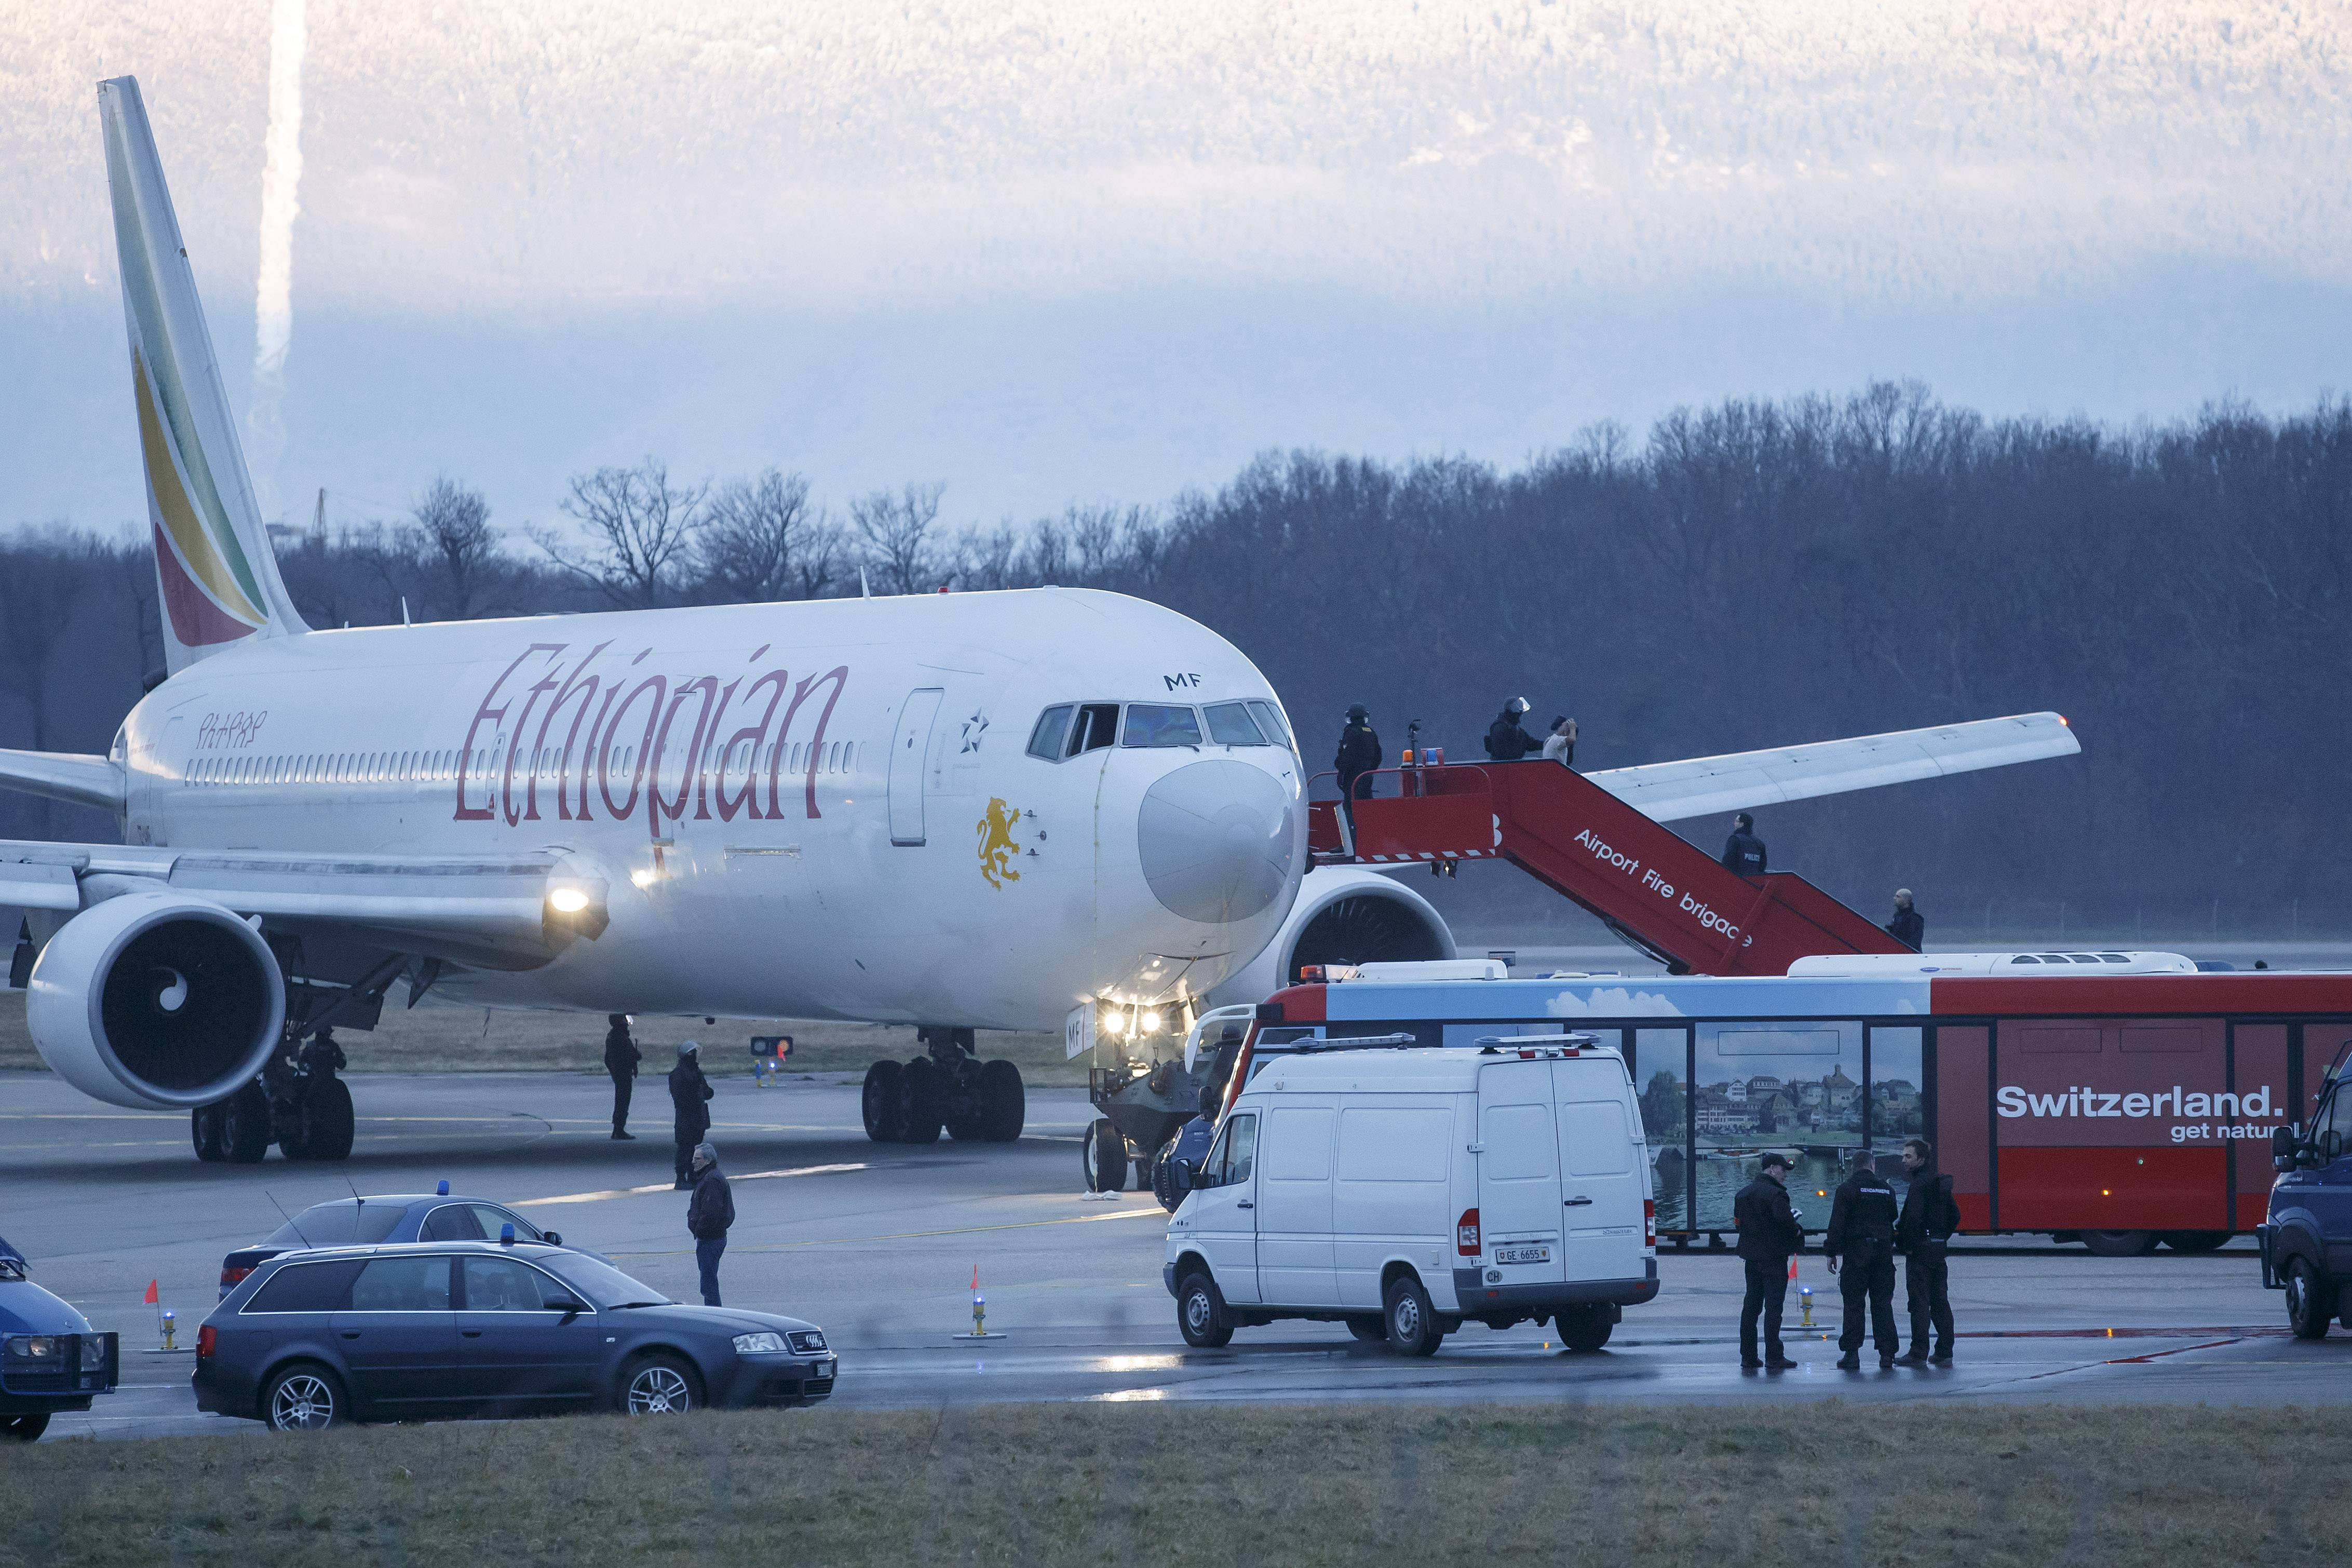 Passengers are evacuated Monday from a hijacked Ethiopian Airlines Plane on the airport in Geneva, Switzerland. A hijacked aircraft traveling from Addis Abeda, Ethiopia, to Rome has landed at Geneva's international airport early Monday morning. Swiss authorities have arrested the hijacker.